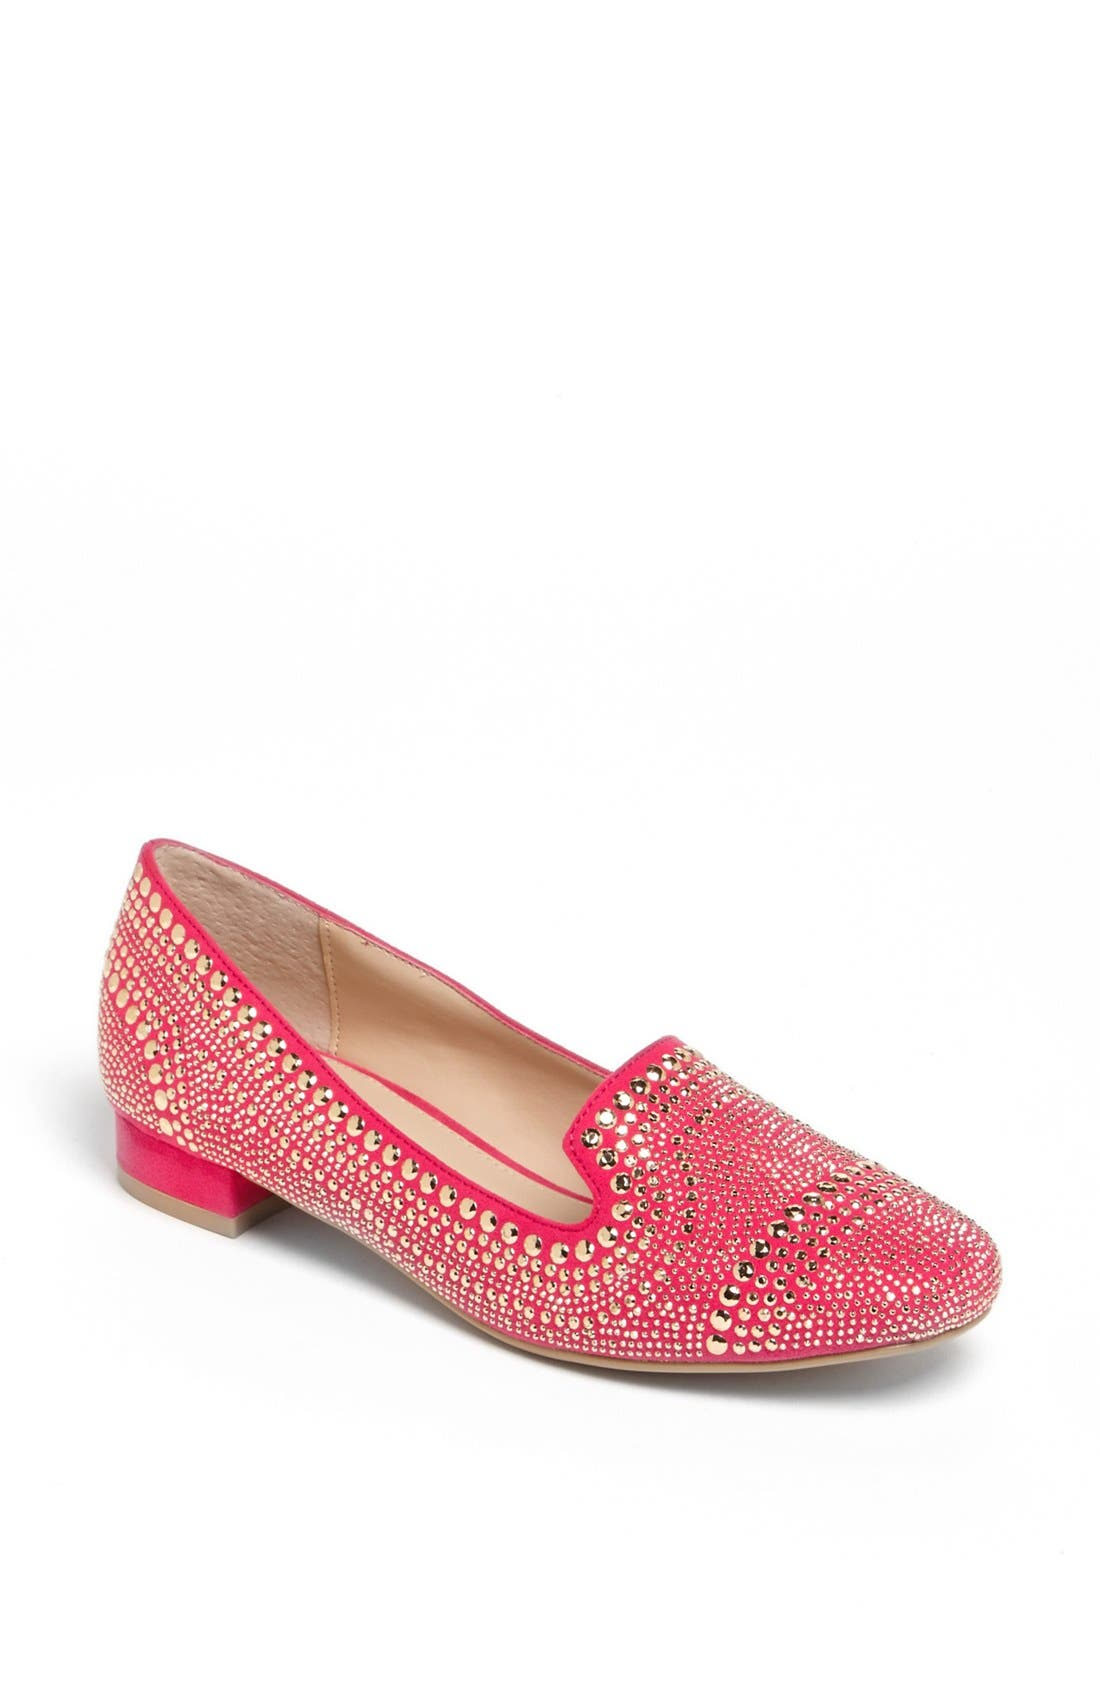 Main Image - Carvela Kurt Geiger 'Lark' Smoking Slipper